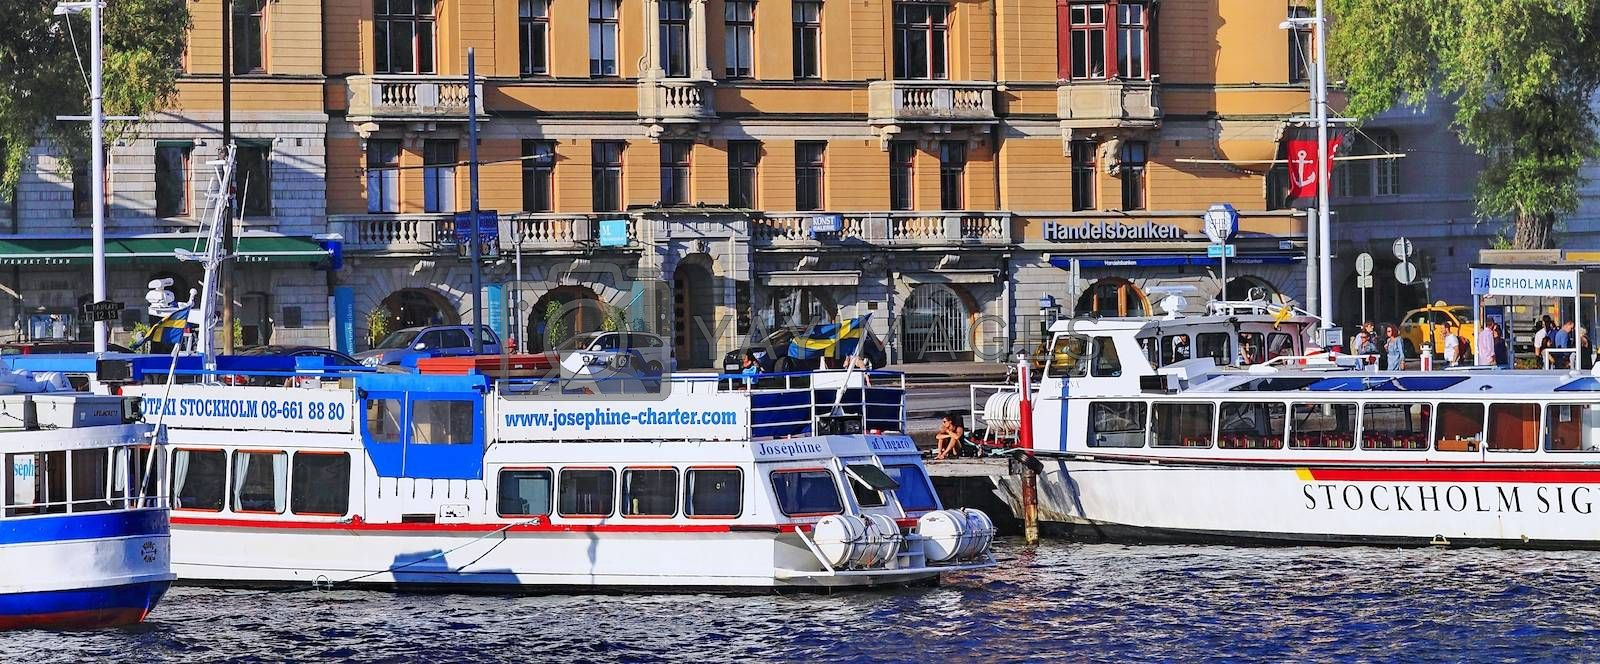 Royalty free image of city pier, Stockholm by victorych